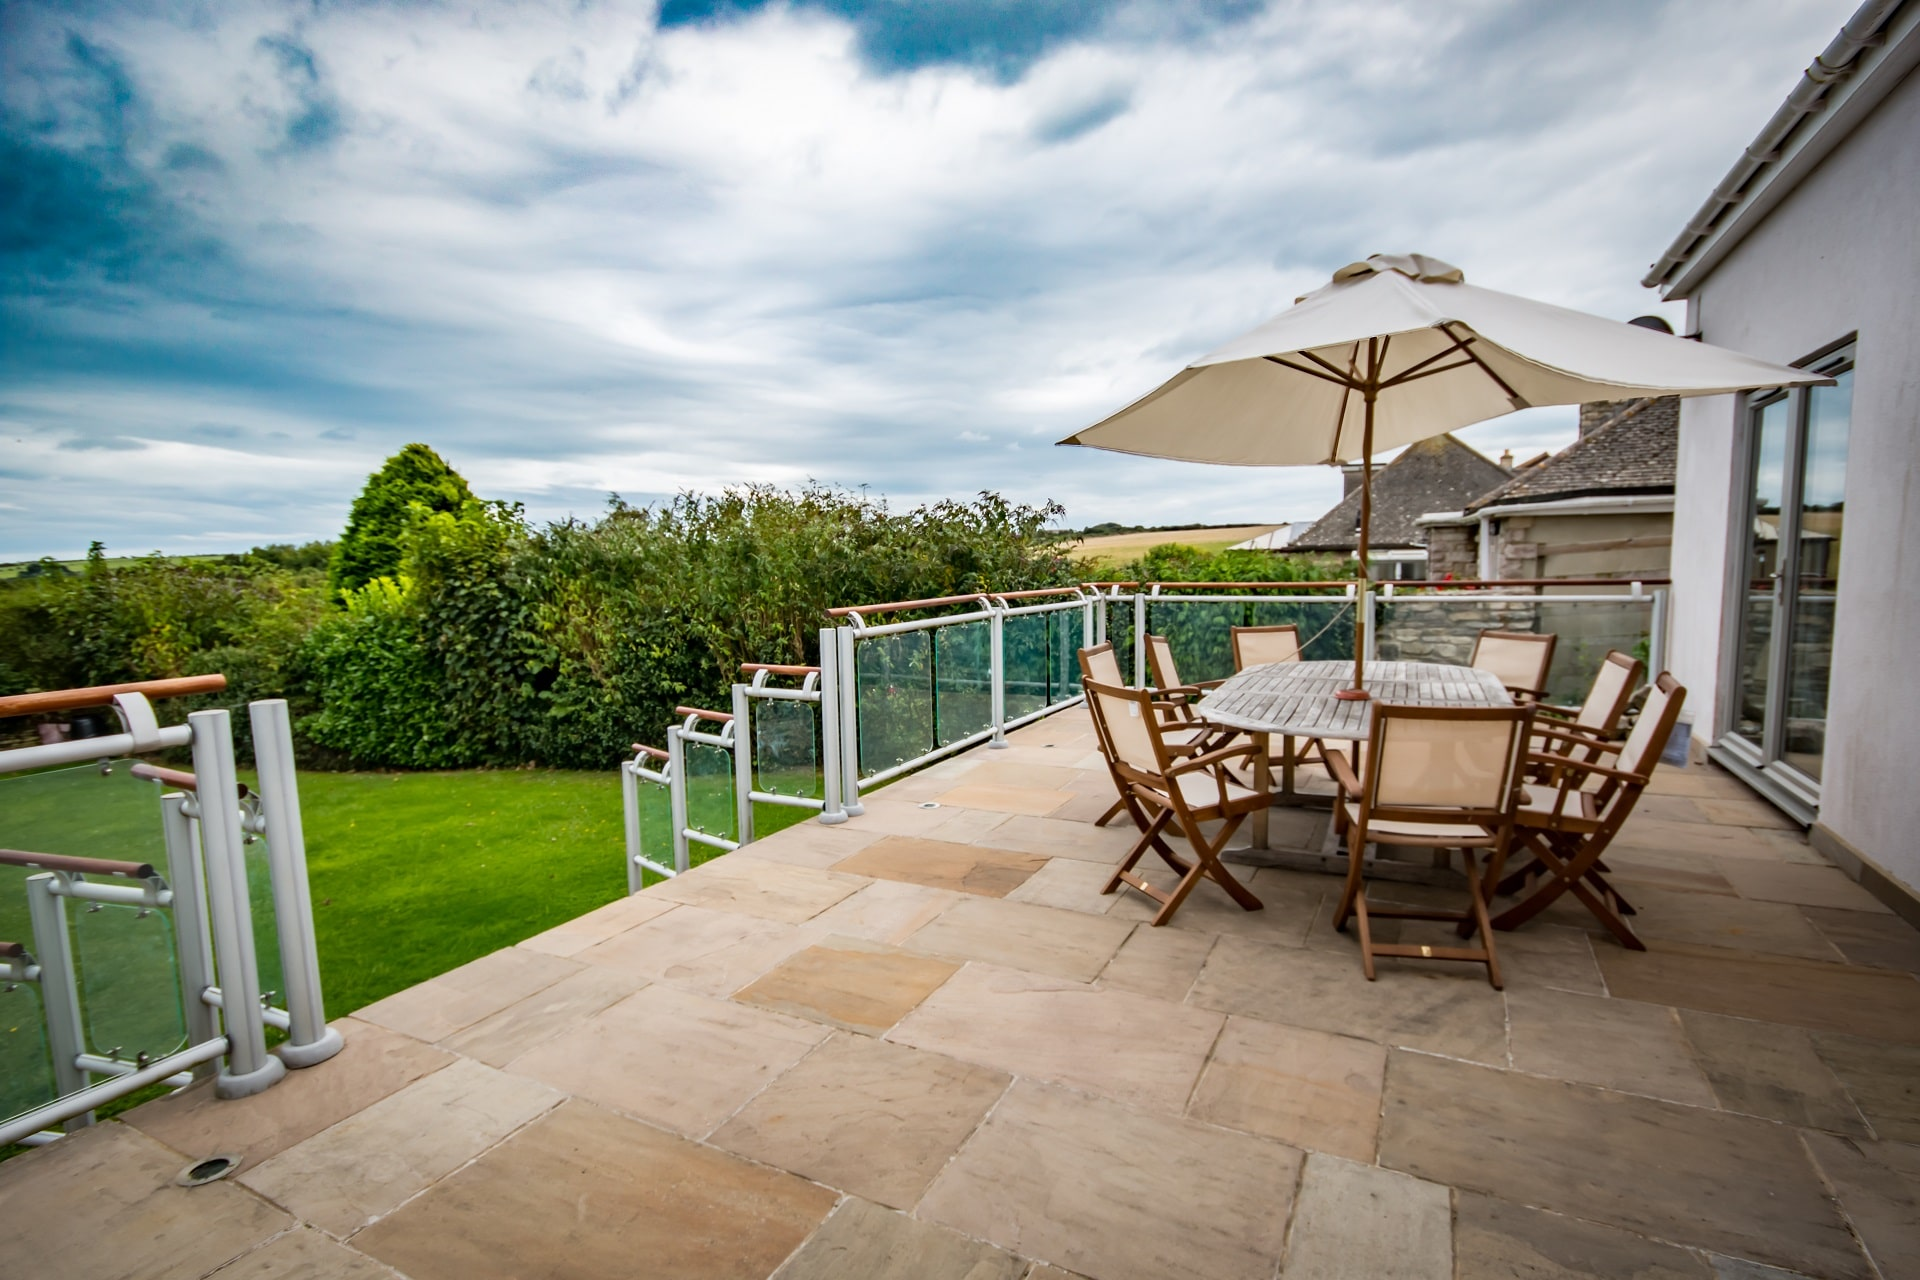 luxury dorset holiday cottage patio